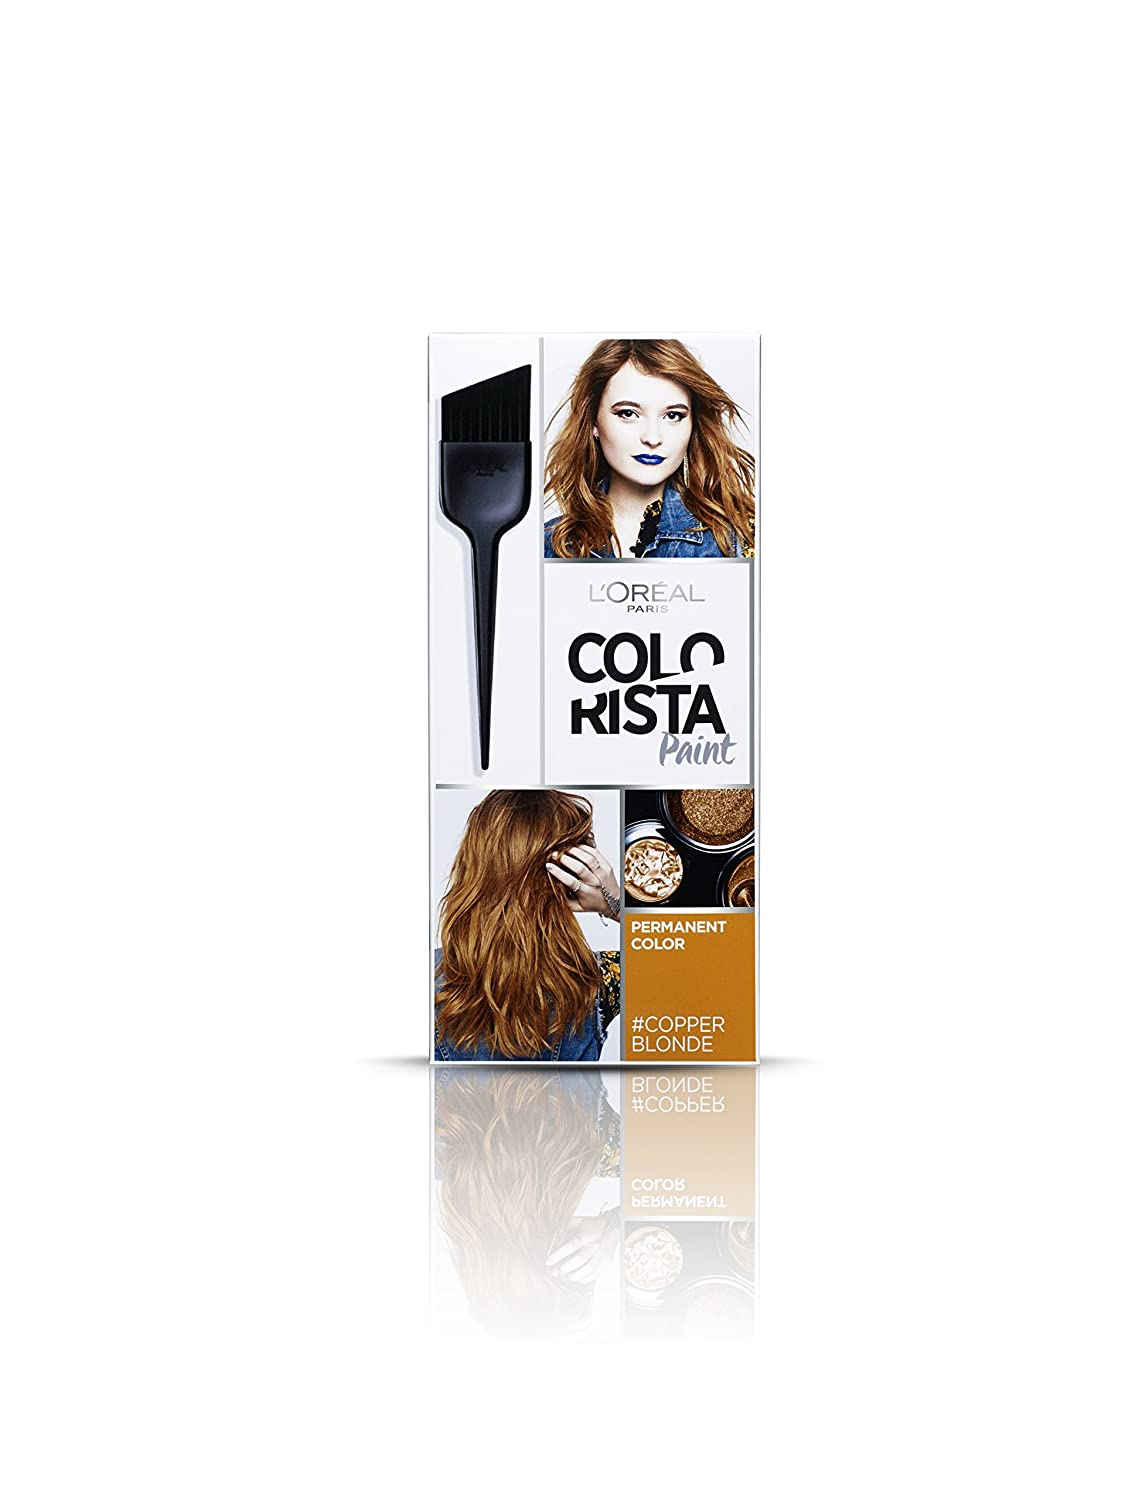 Paint Loreal Preference Ombre: reviews about usability